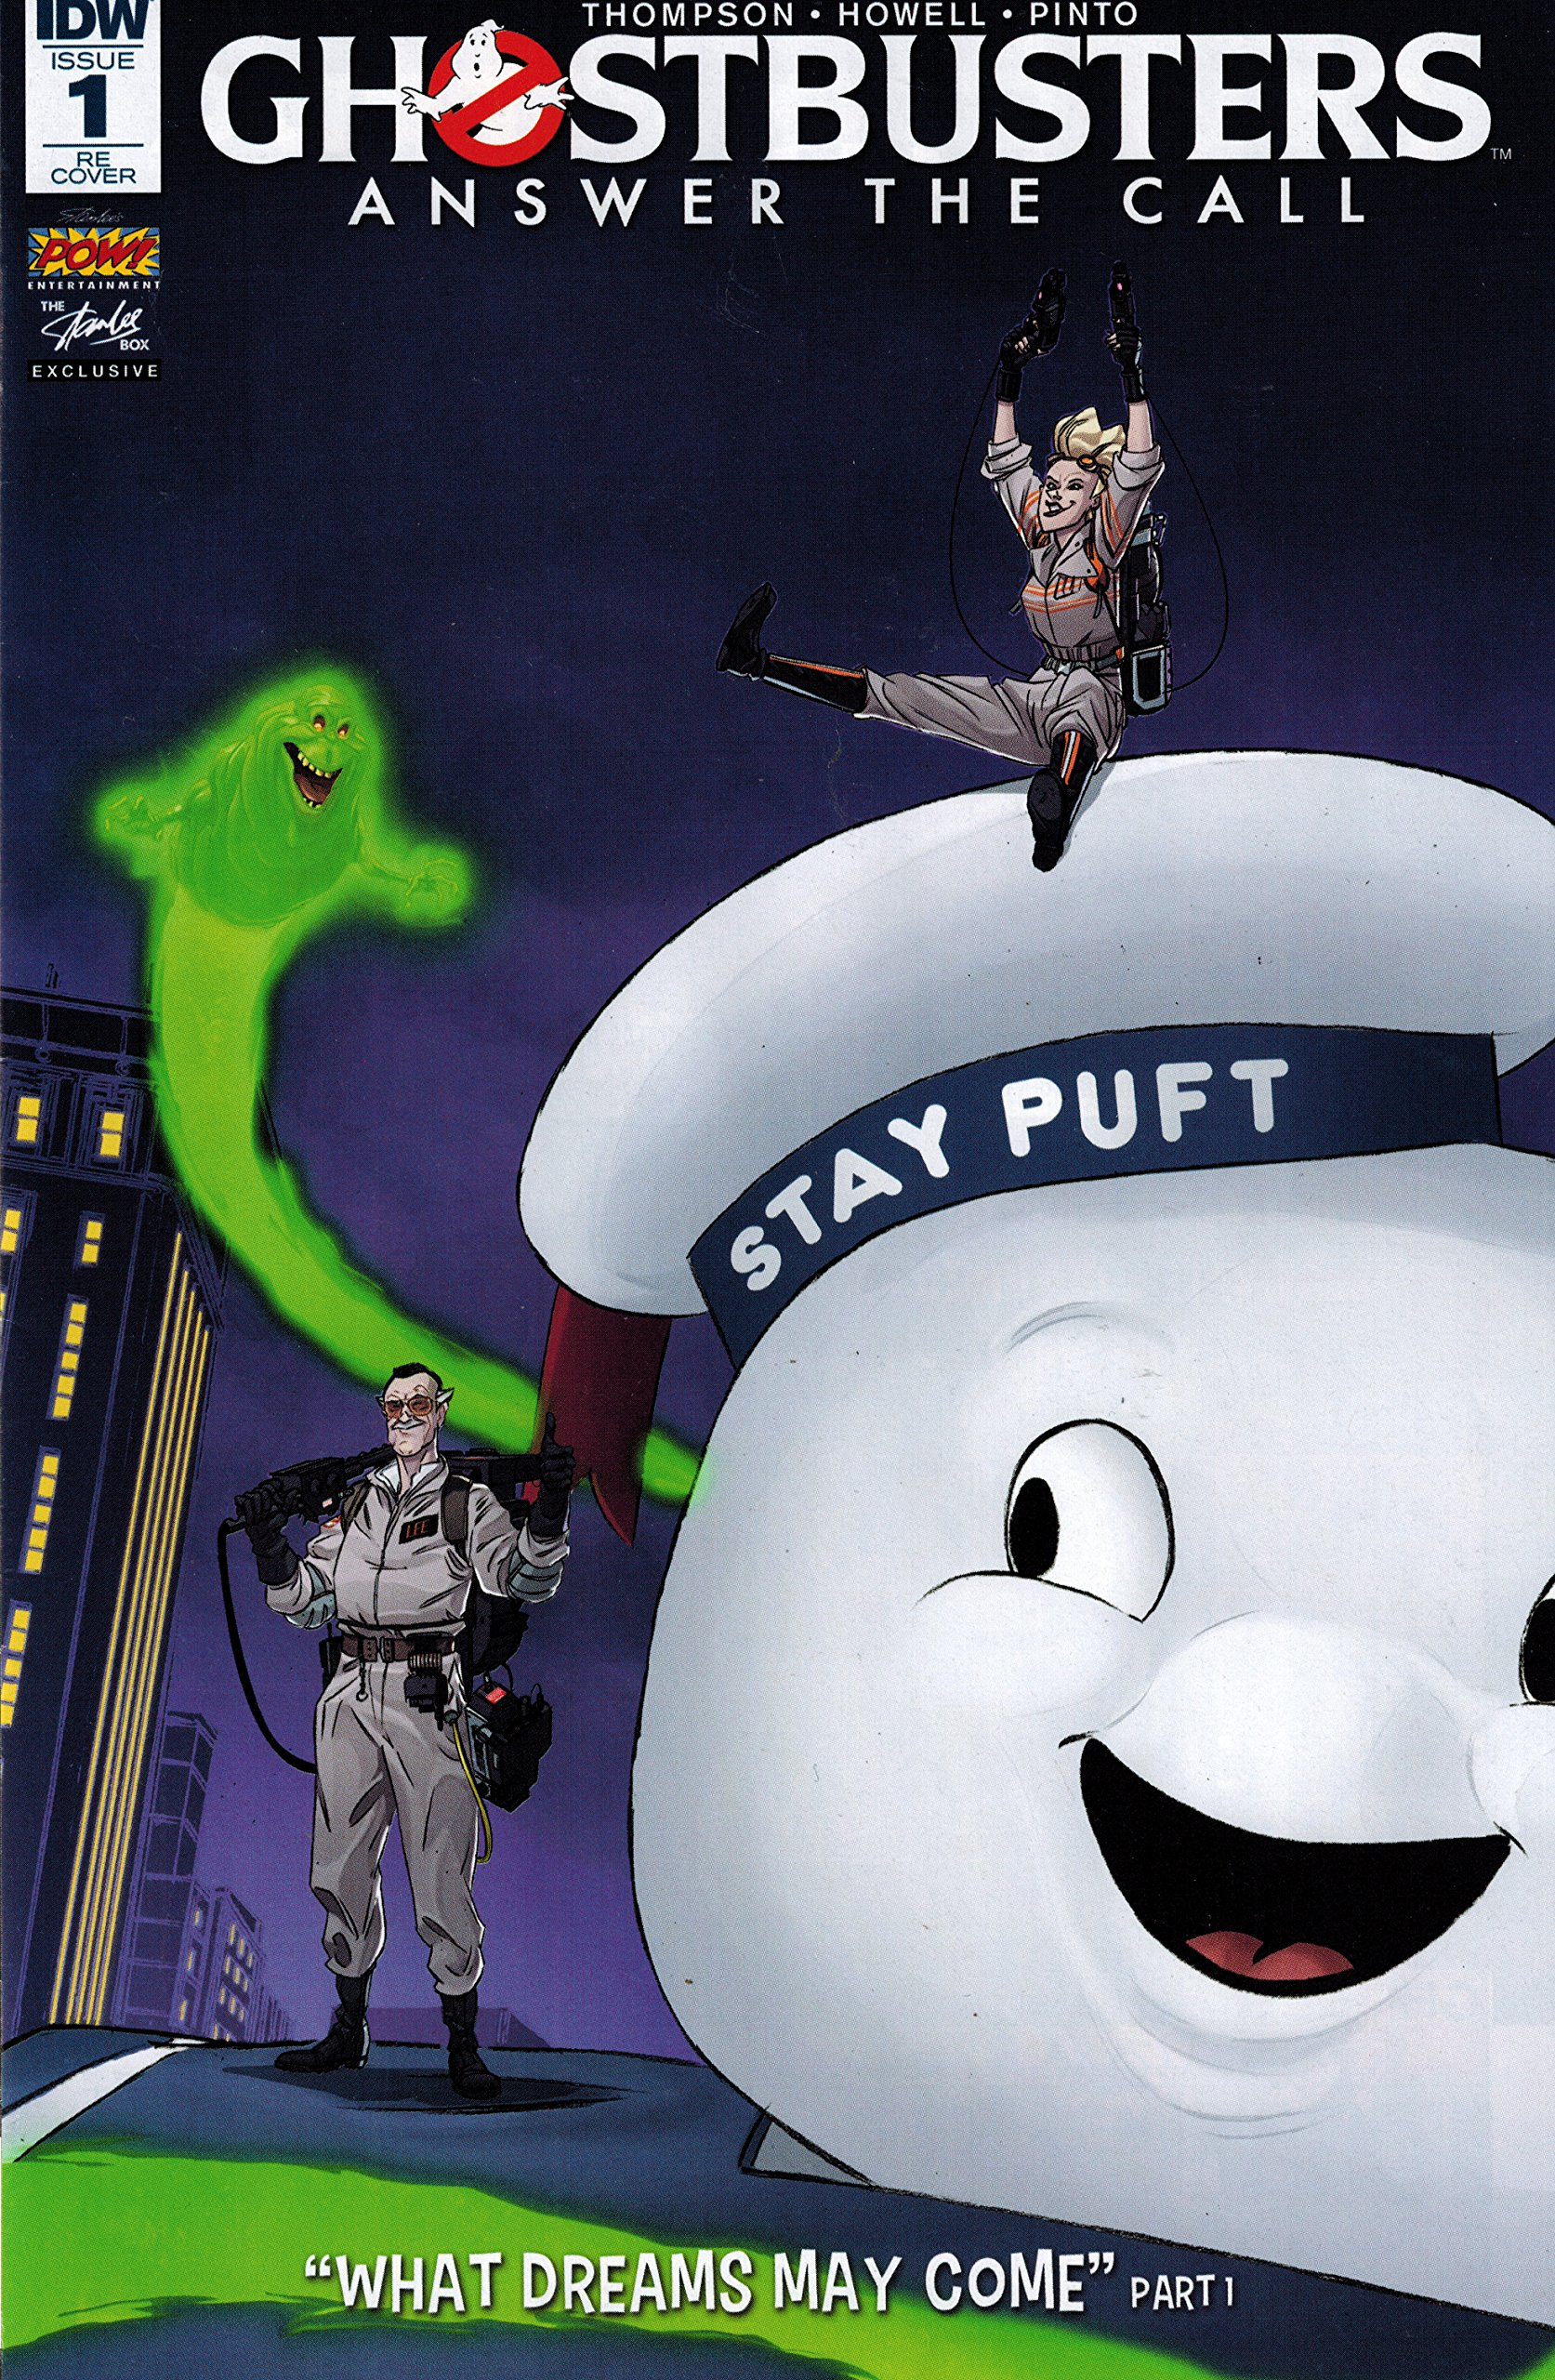 GHOSTBUSTERS 101 #1 Subscription Cover A 2017